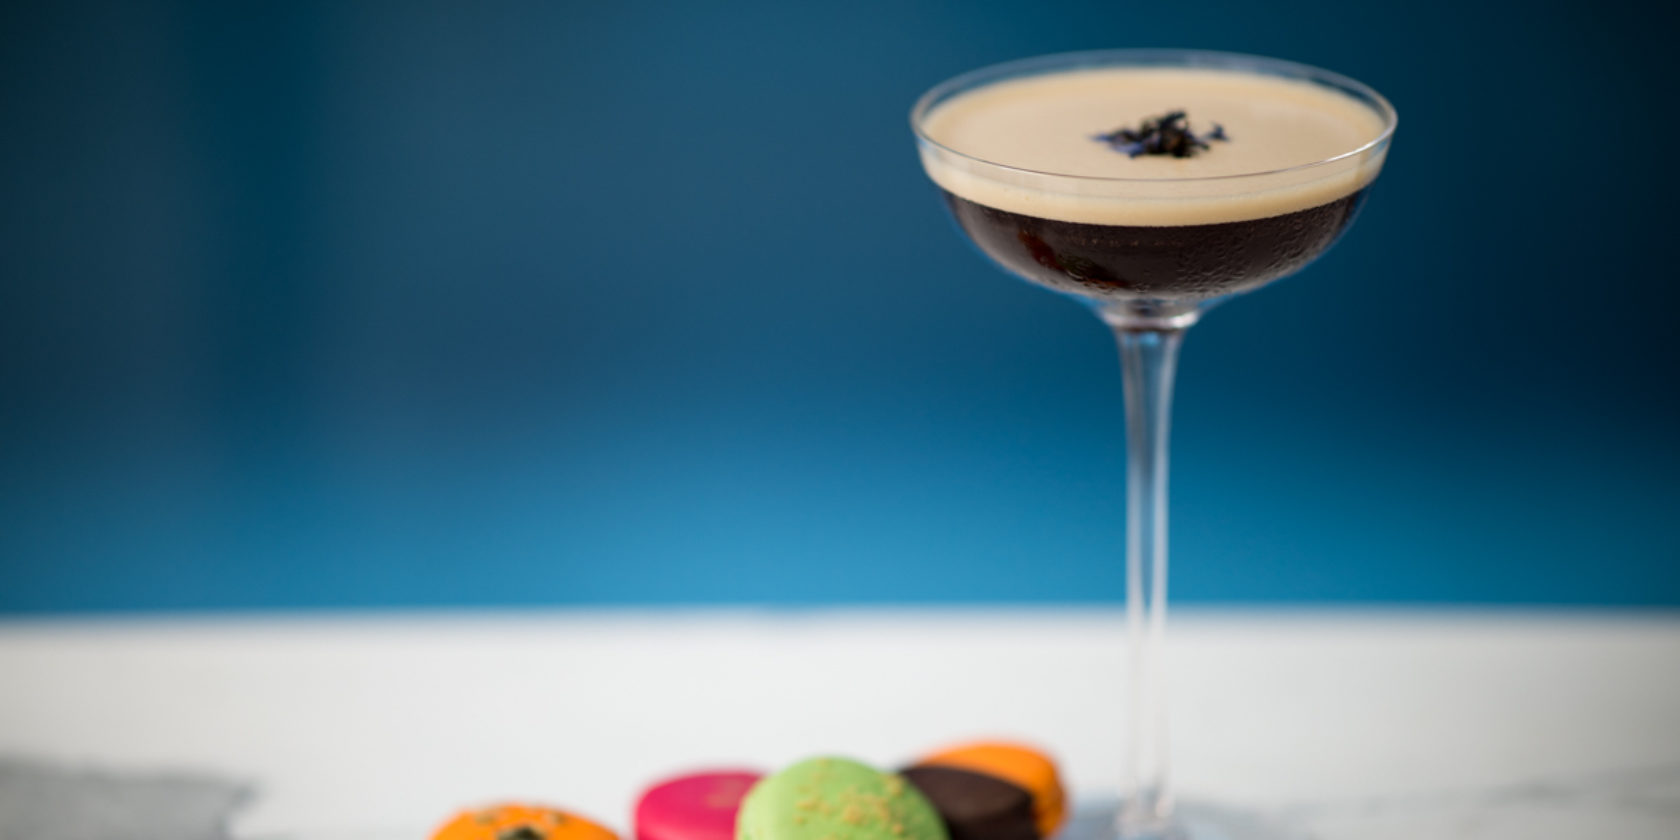 The Early Martini with Grey Goose Vodka and Macarons